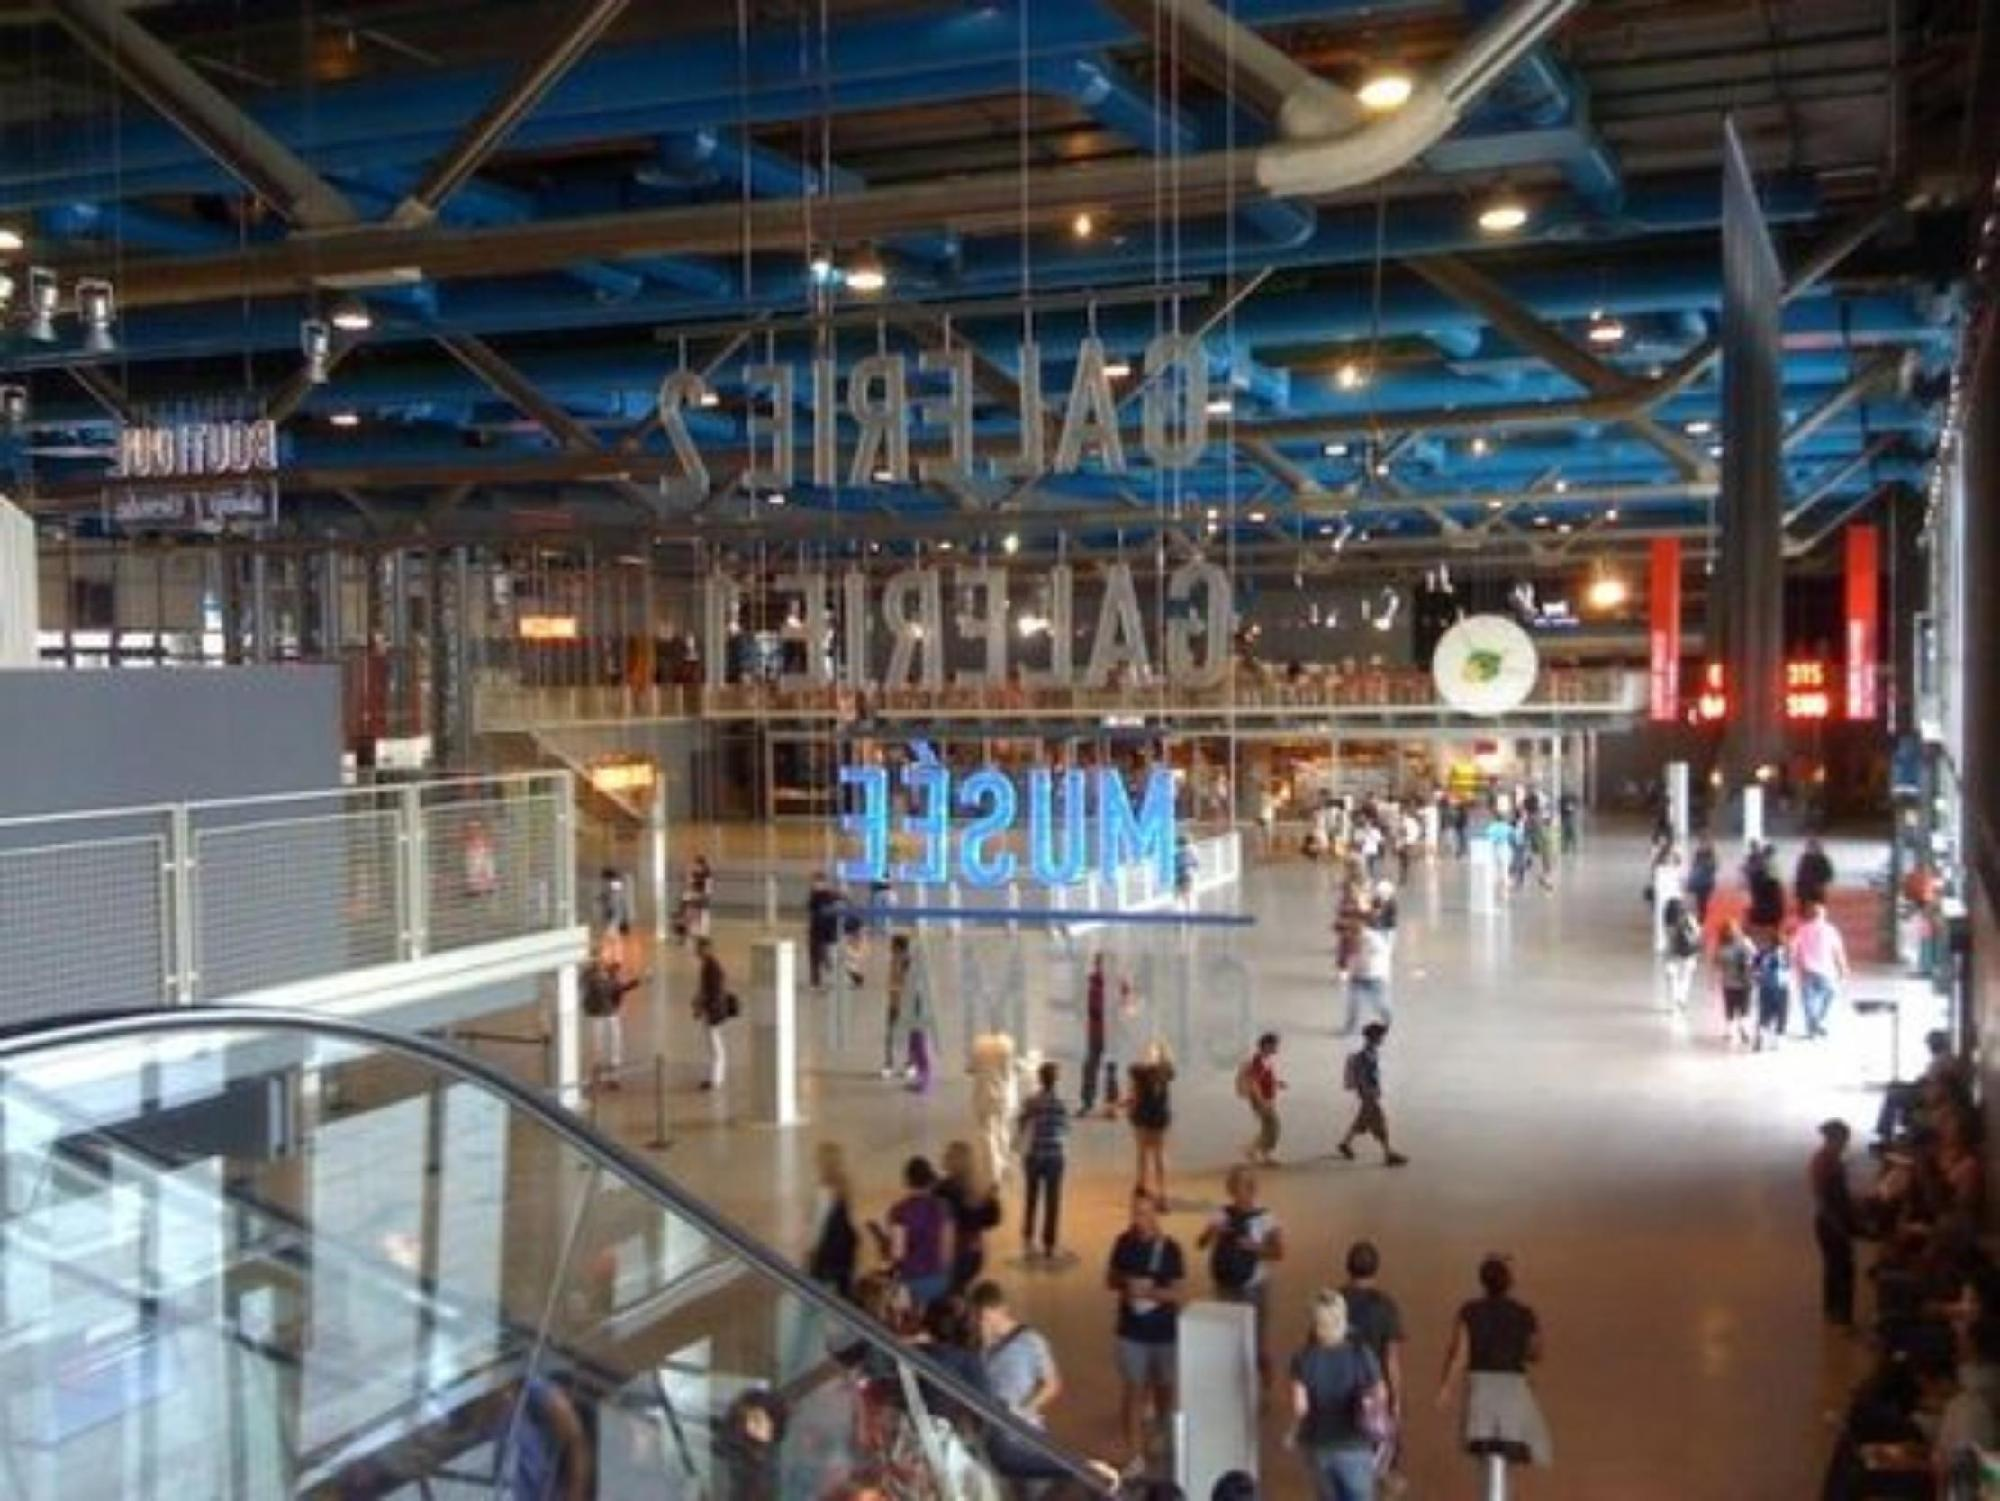 Children's gallery at the Centre Pompidou